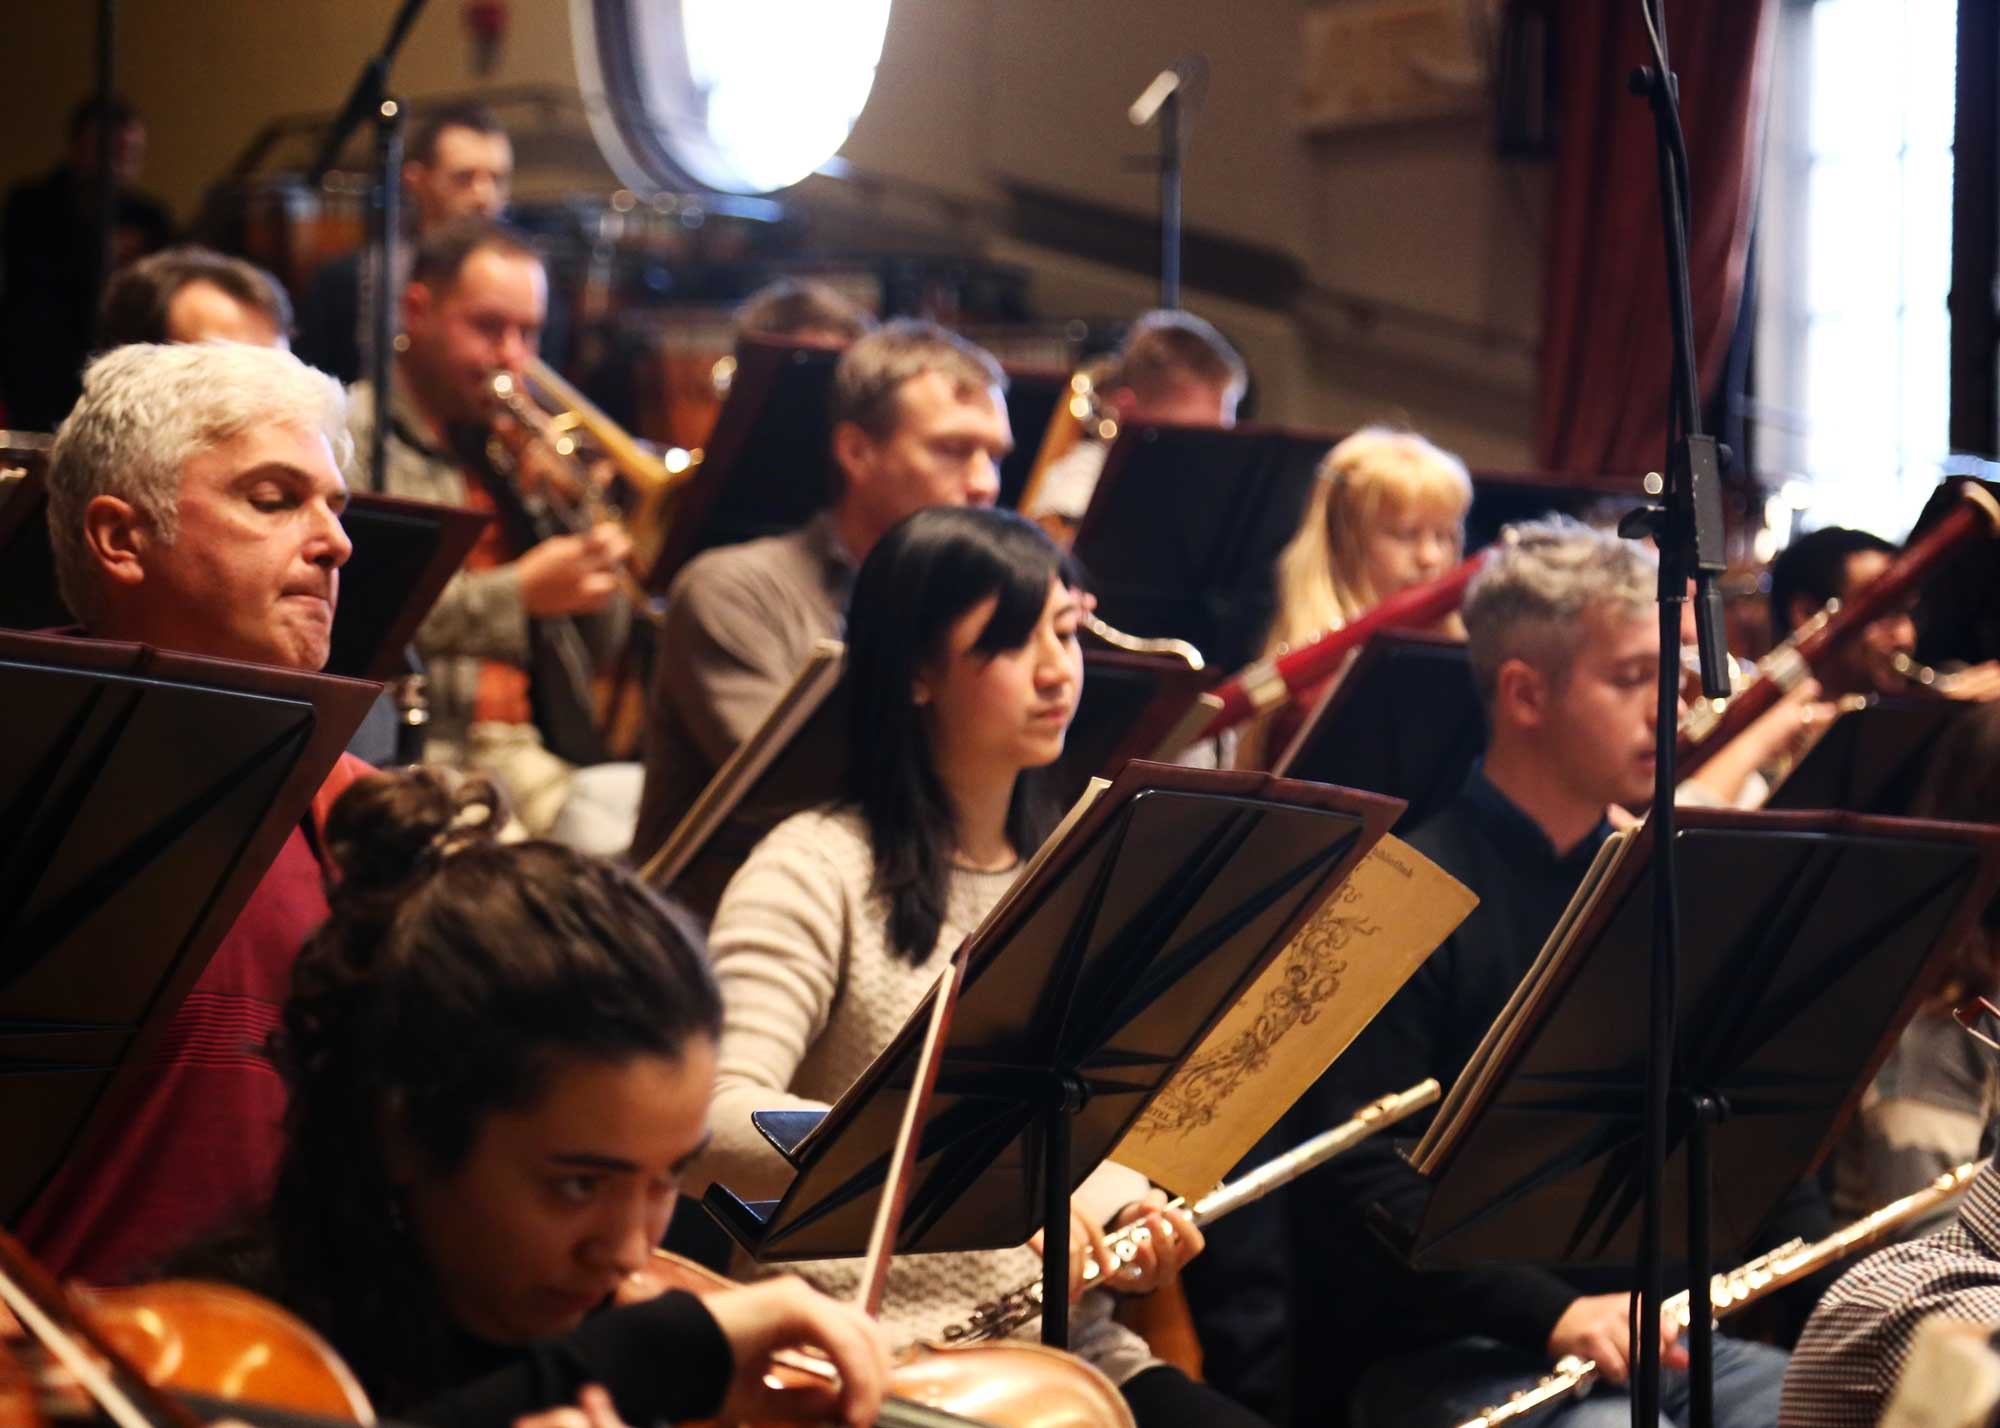 Royal Academy of Music, London – Music education photography by Frances Marshall